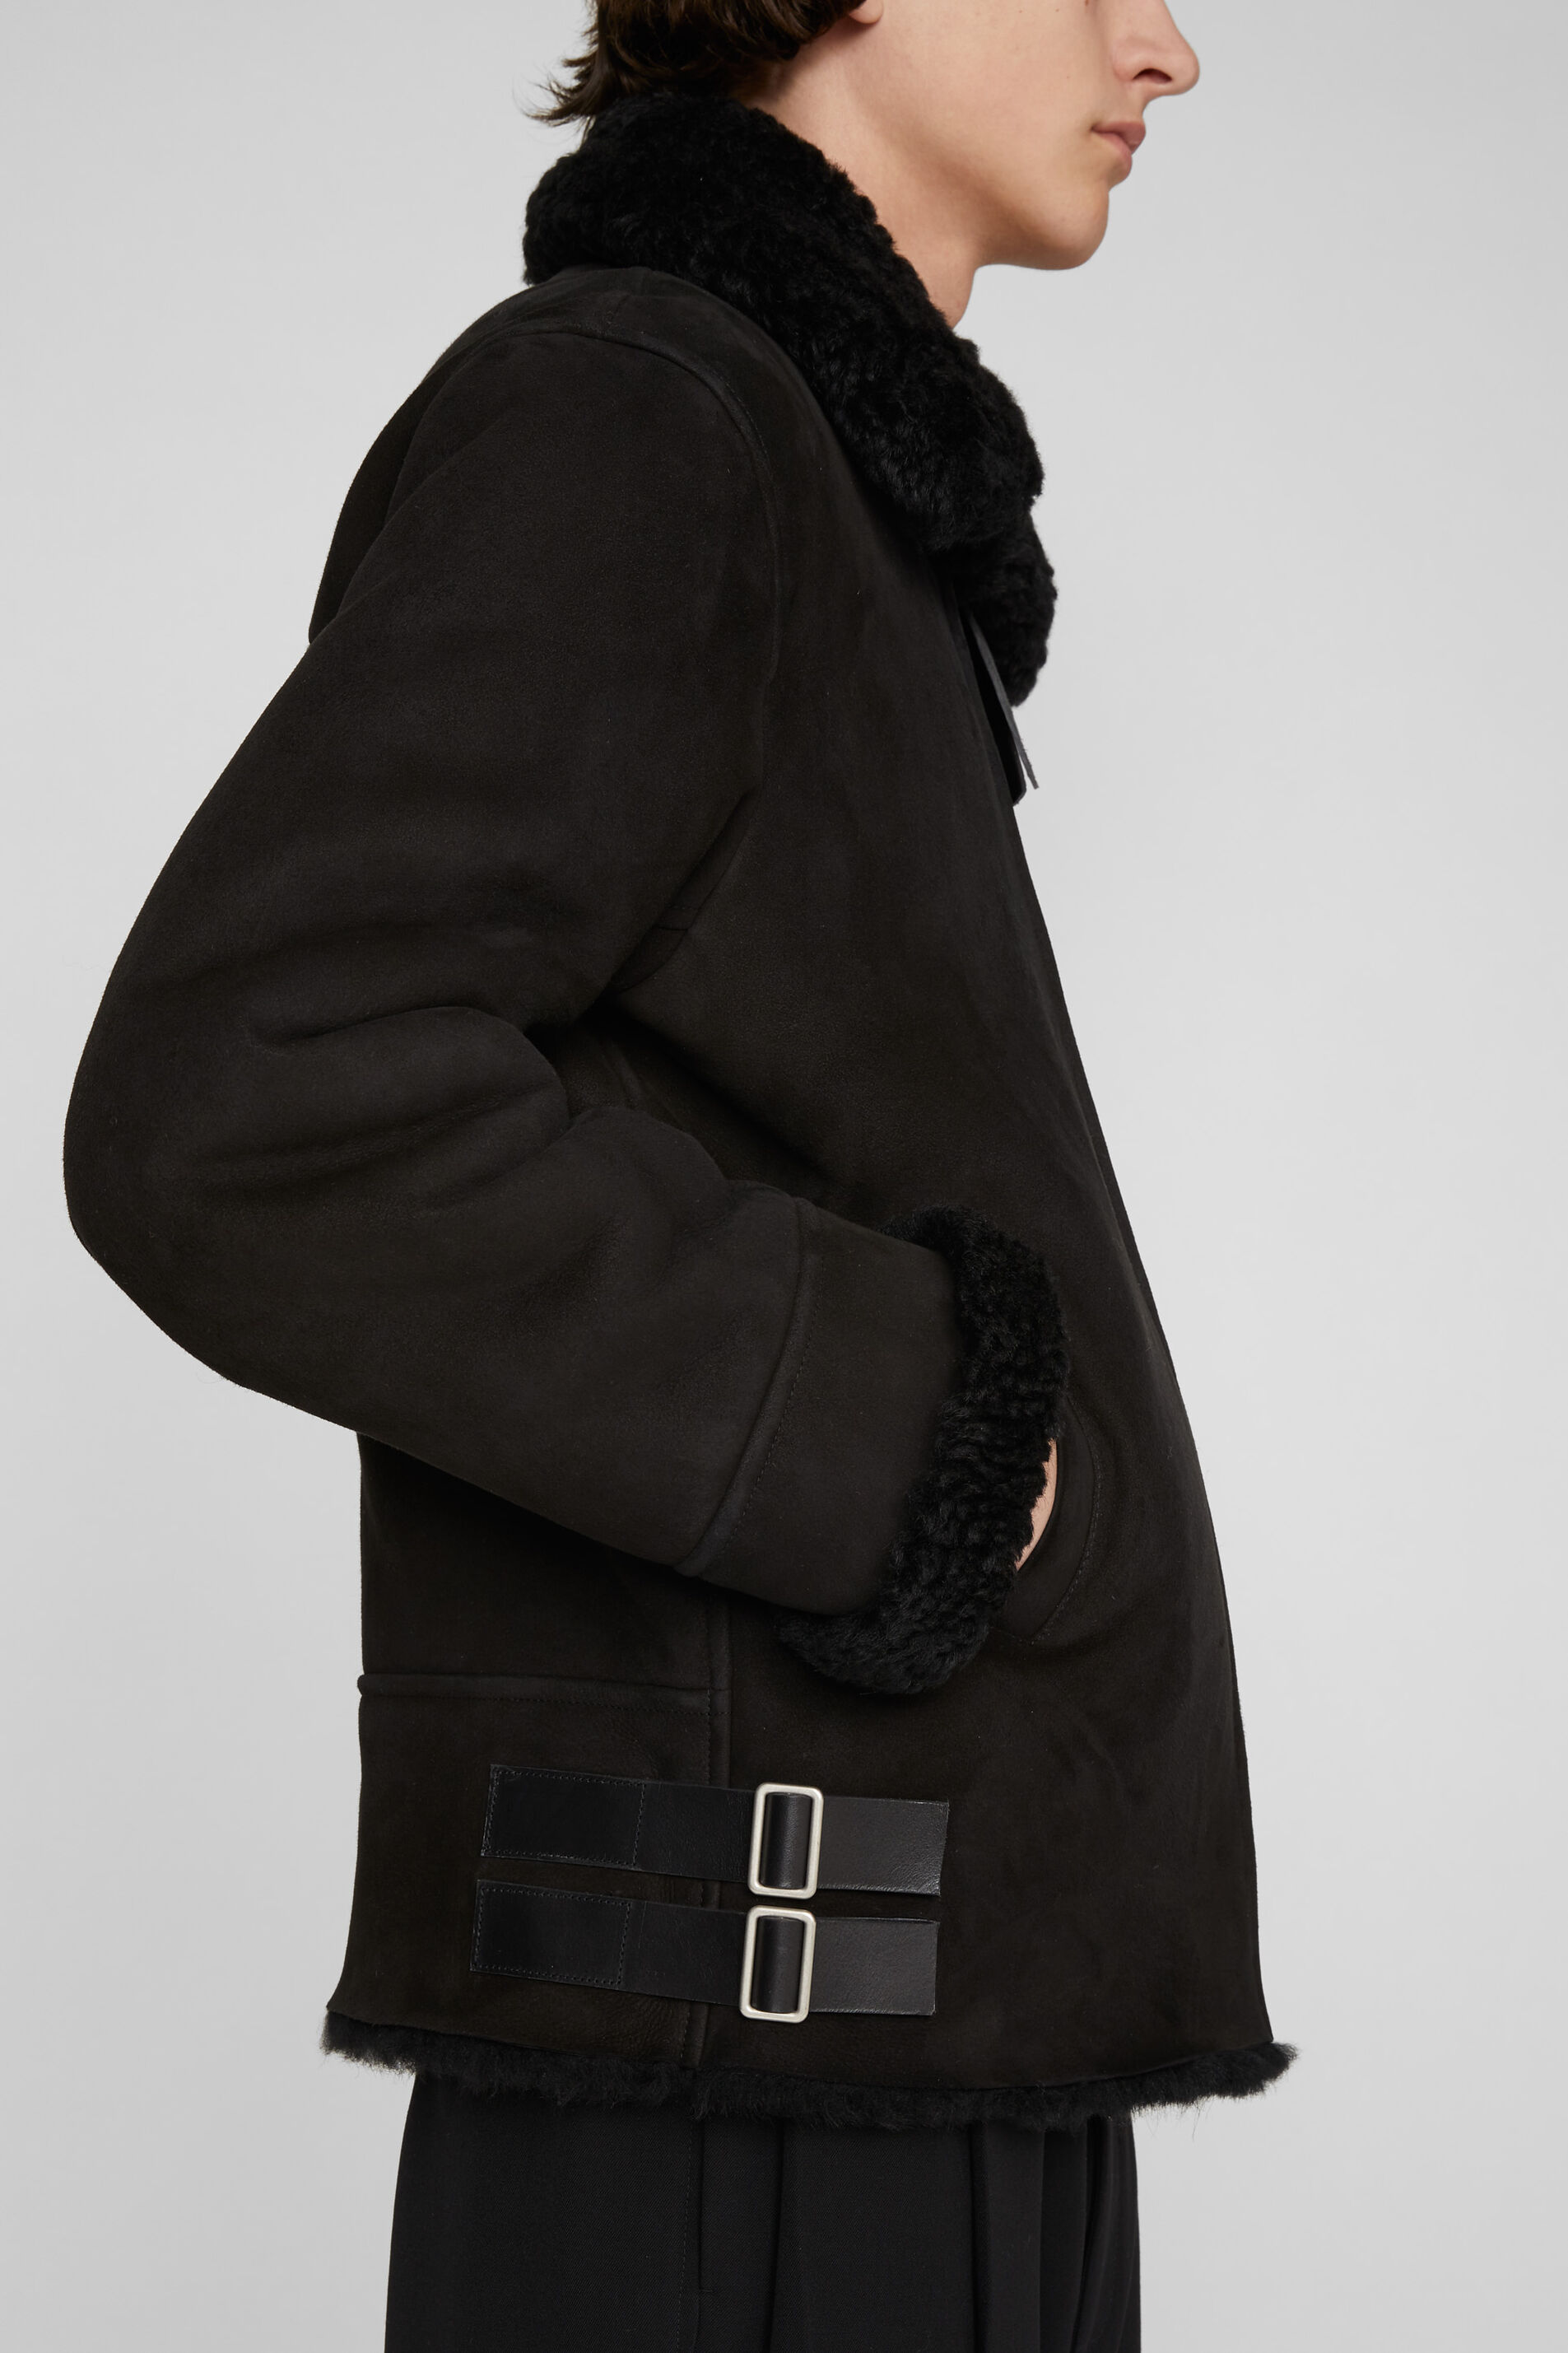 Shearling Jacket, black, large